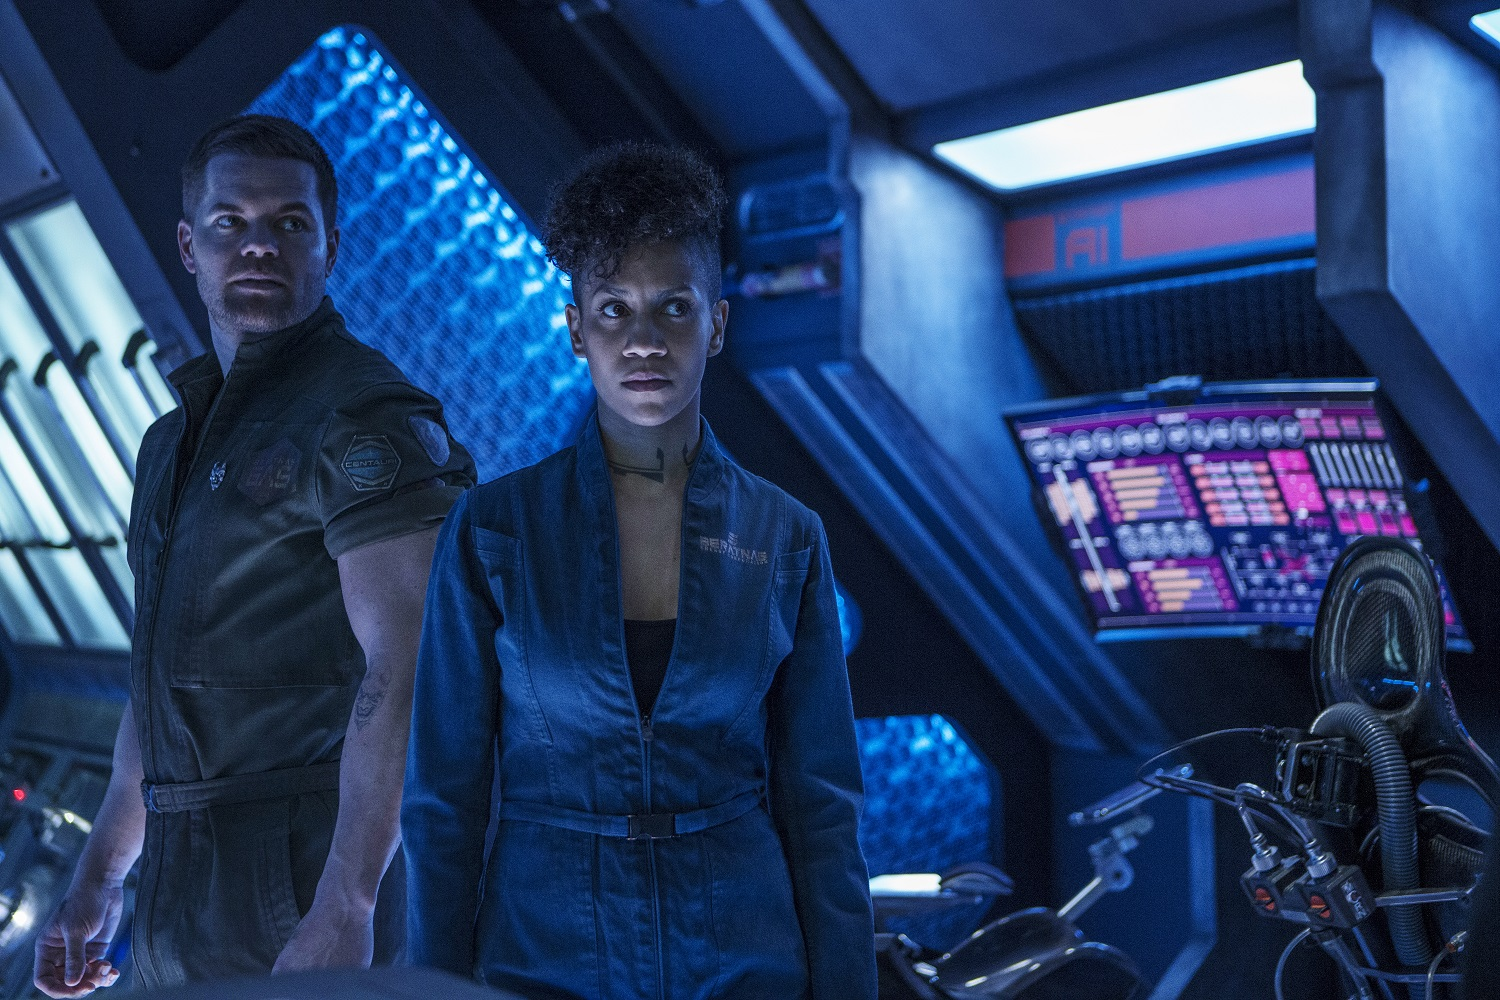 Wes Chatham as Amos Burton, Dominique Tipper as Naomi Nagata on The Expanse